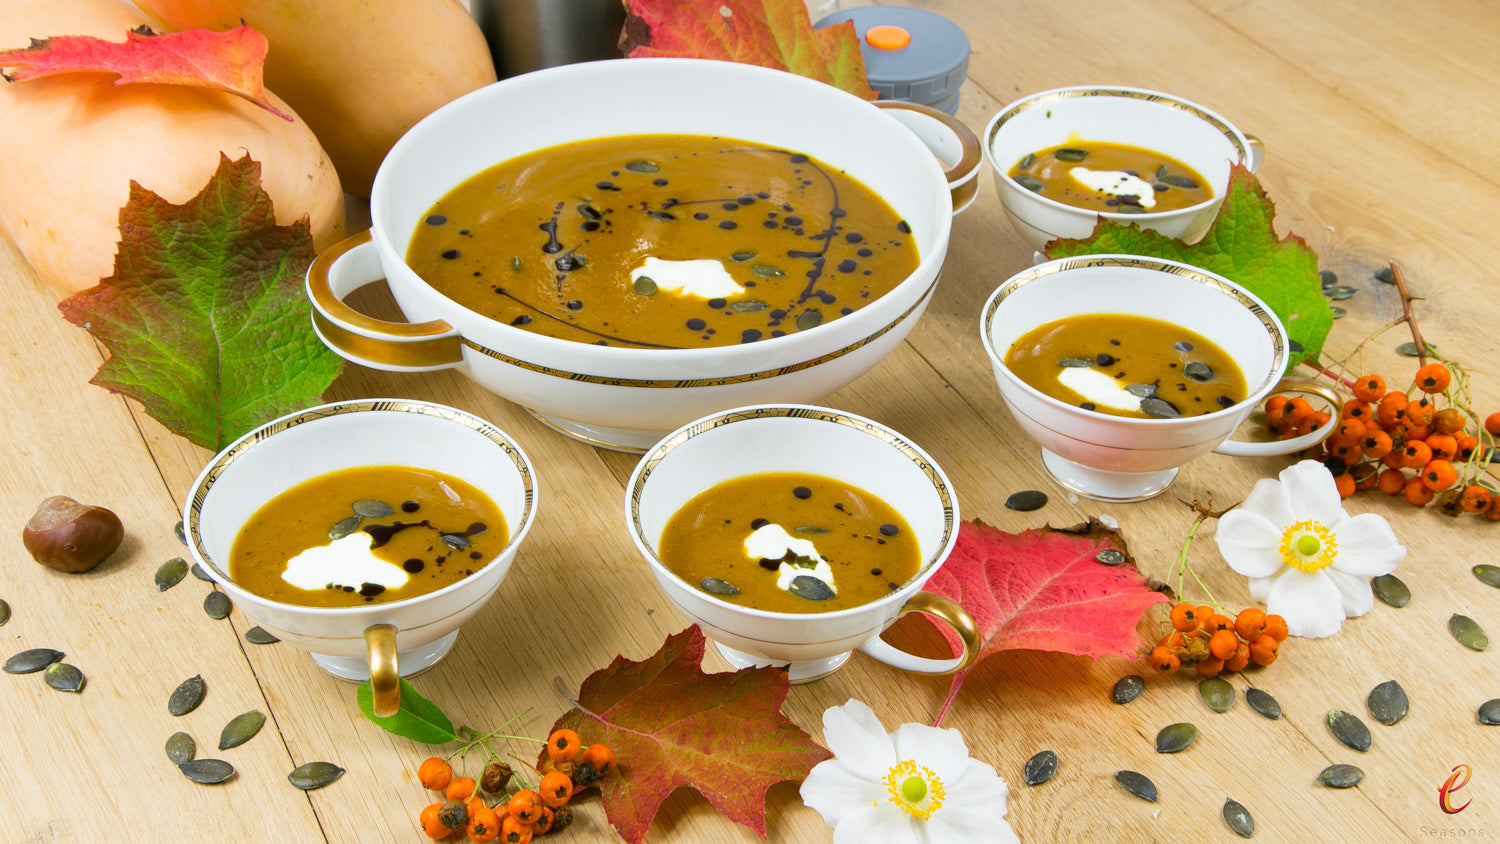 Autumnal Spicy Pumpkin Soup with Roasted Vegetables